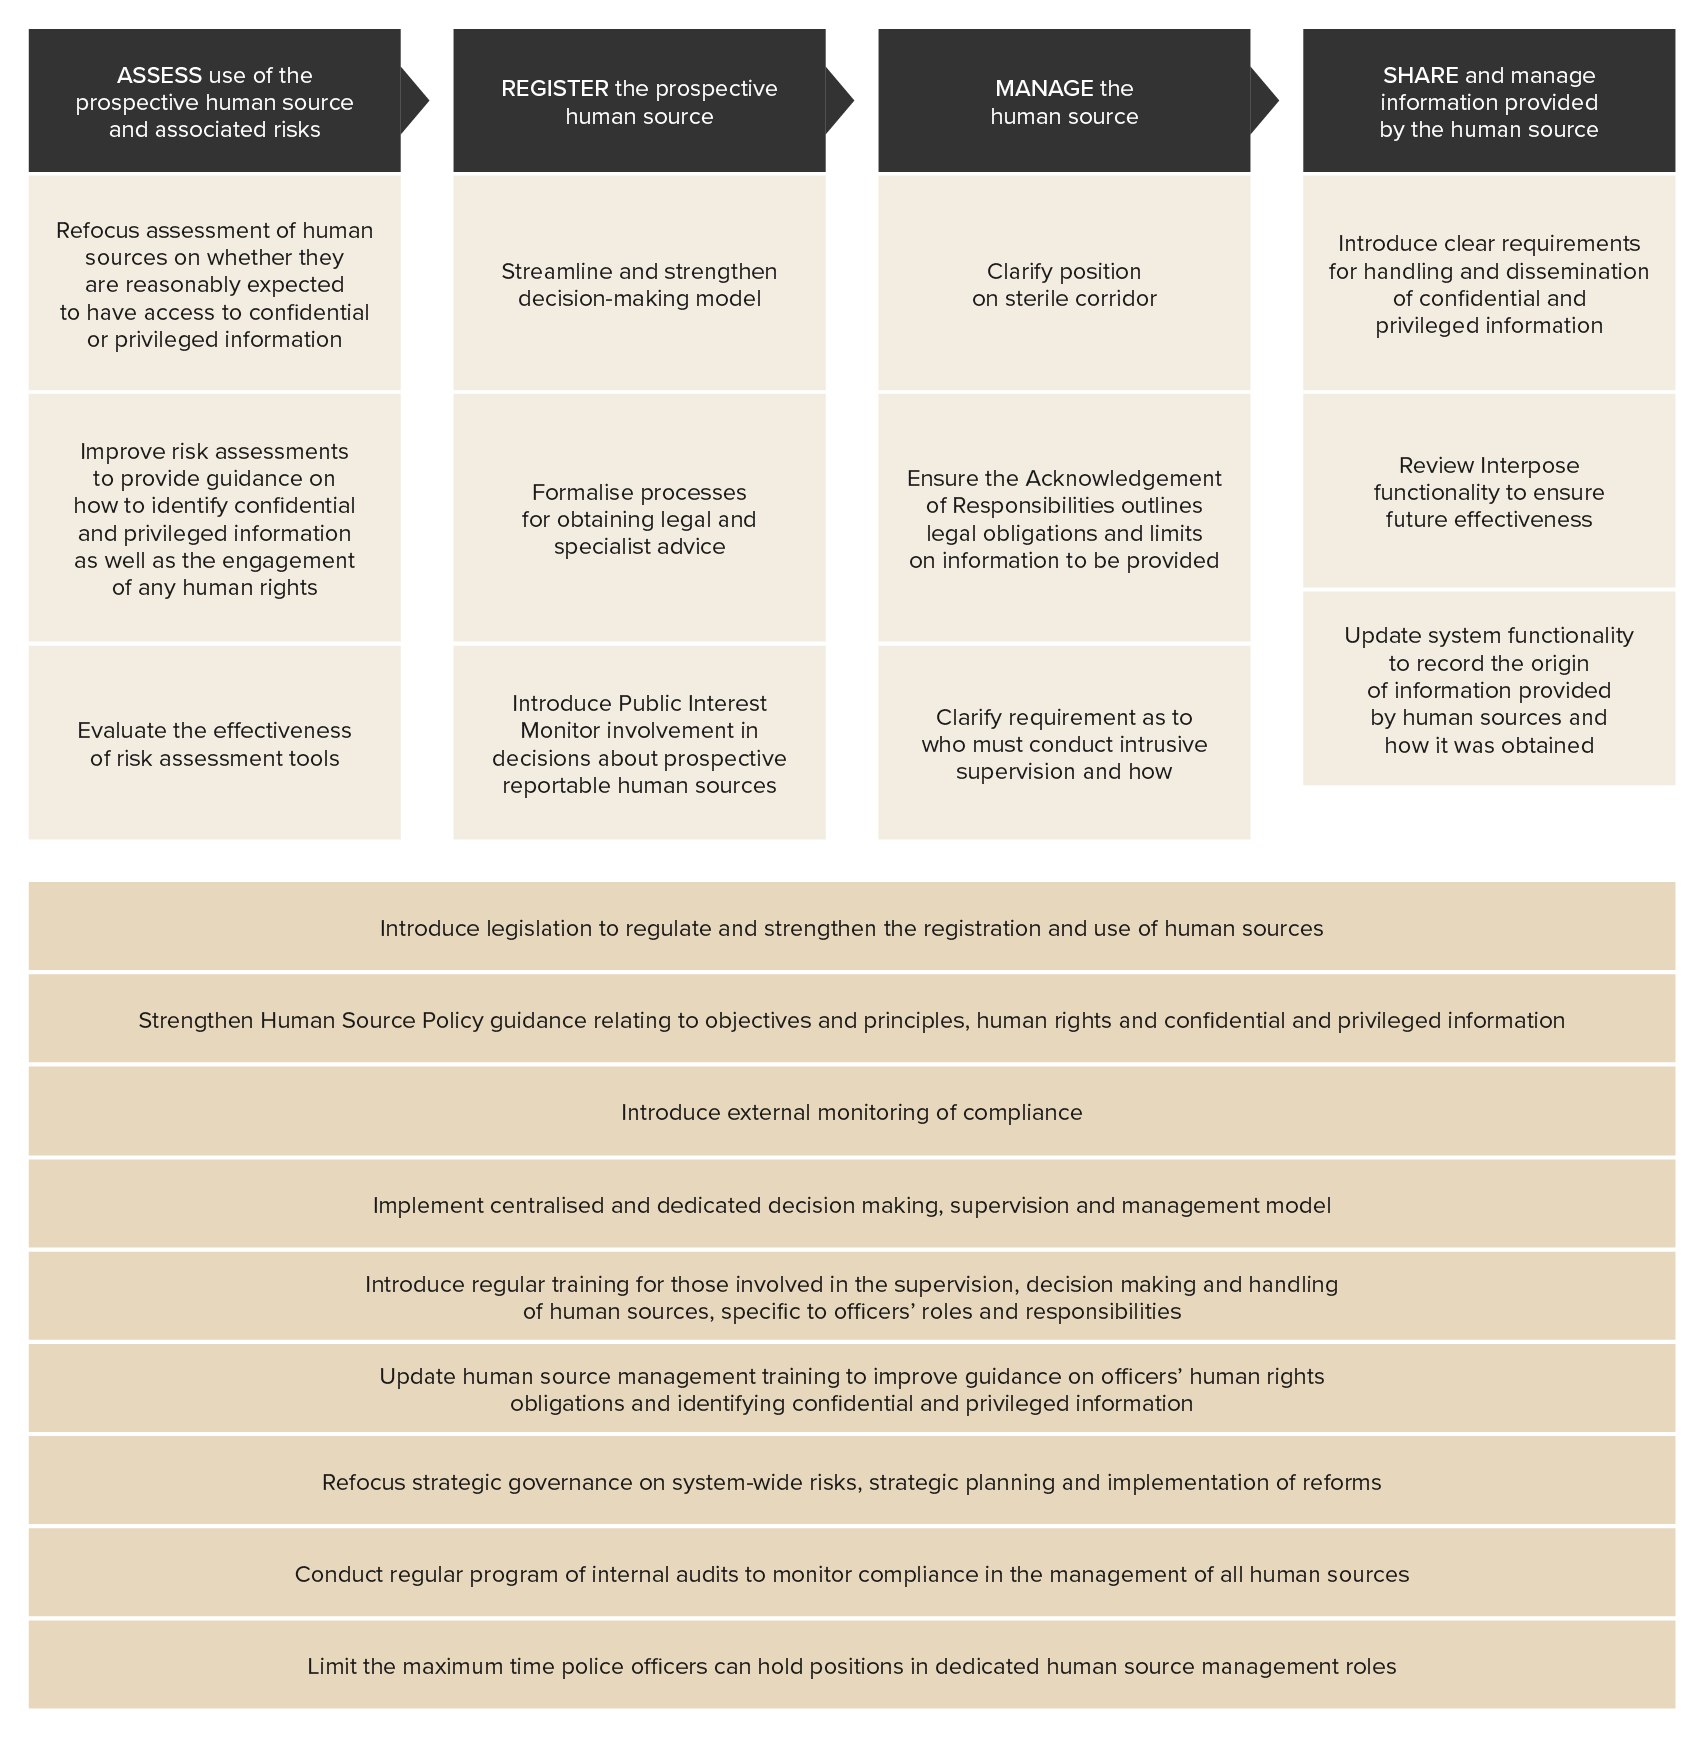 Figure 5 - Overview of recommendations to strengthen Victoria Police's human source management framework